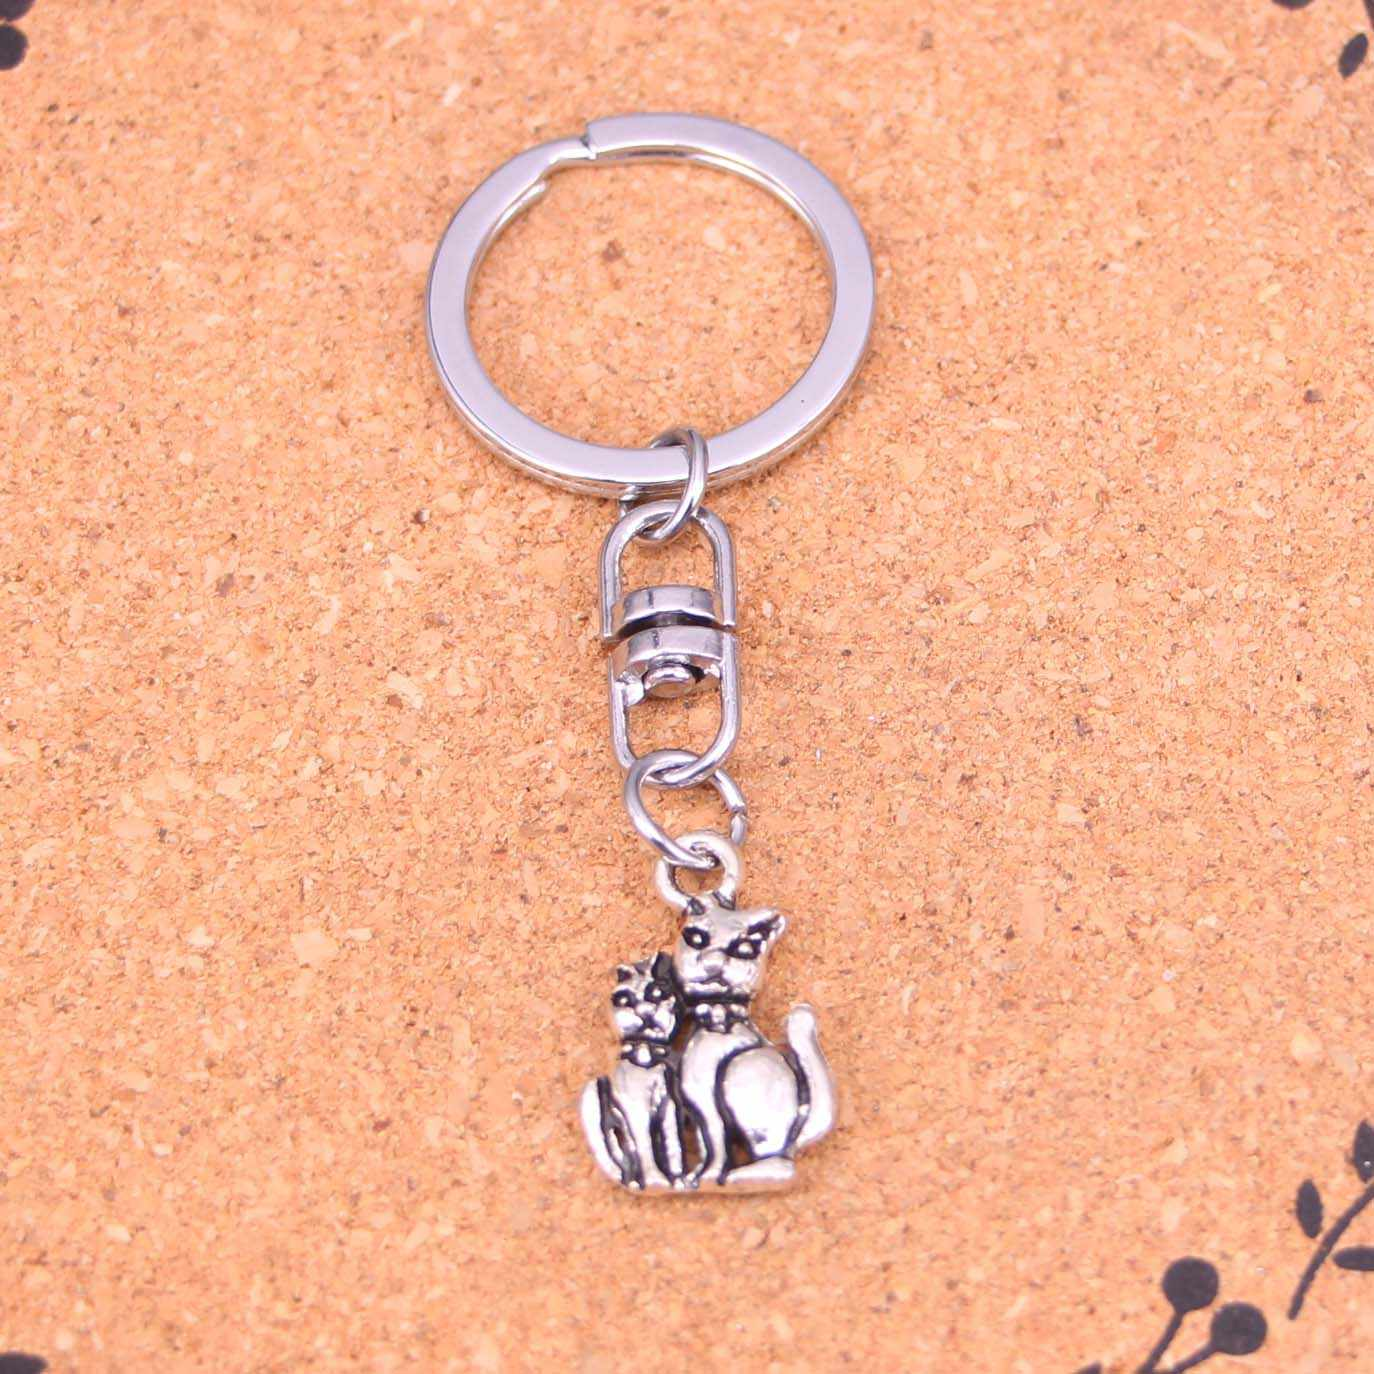 20Pcs Mother and son cat Keychain Novelty Gadget Trinket Souvenir Christmas Gift Keychain Drop Shipping